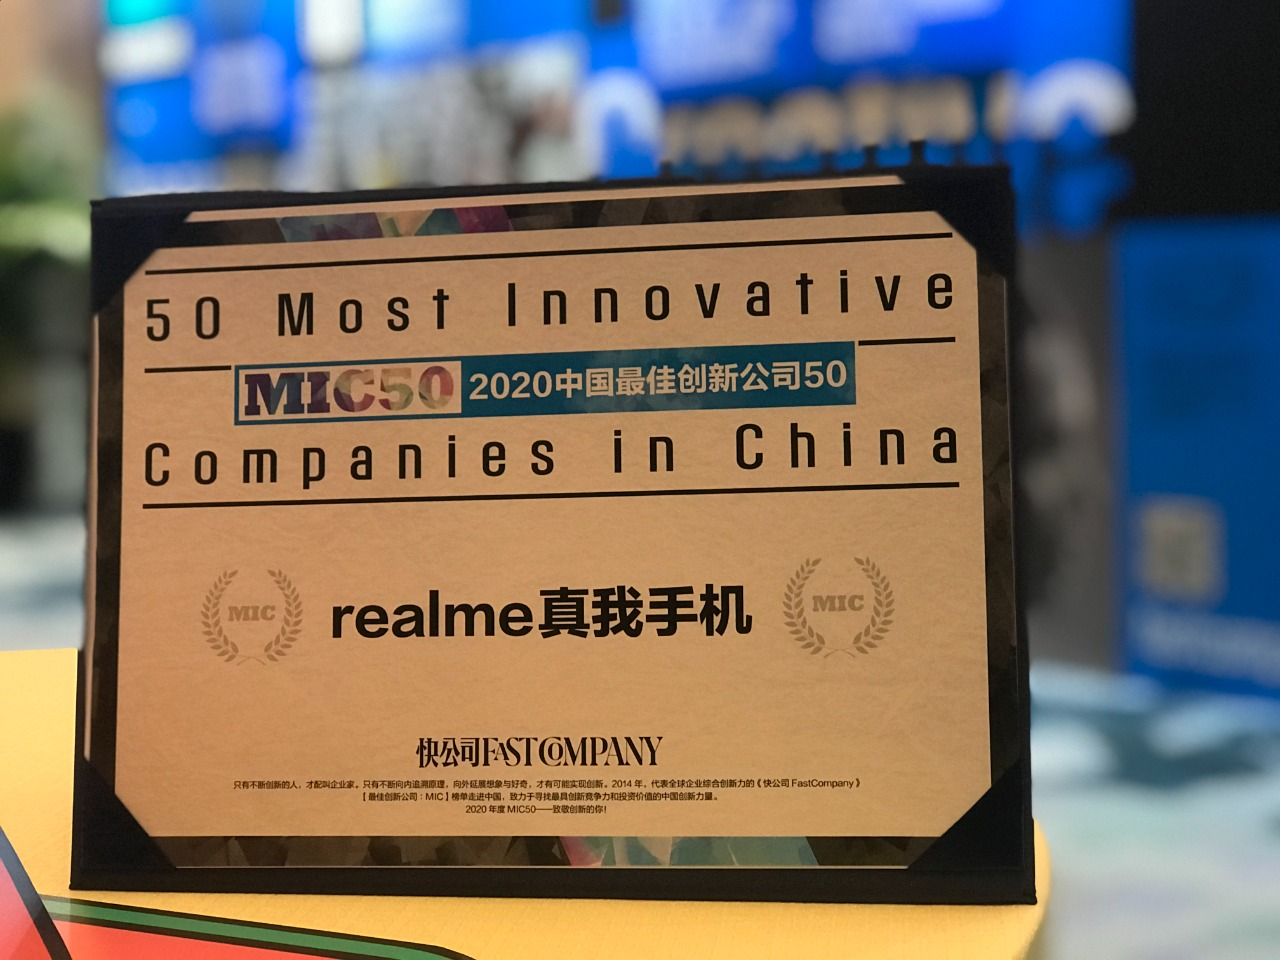 "realme entitled Fast Company's ""50 Most Innovative Companies in China"" of 2020"